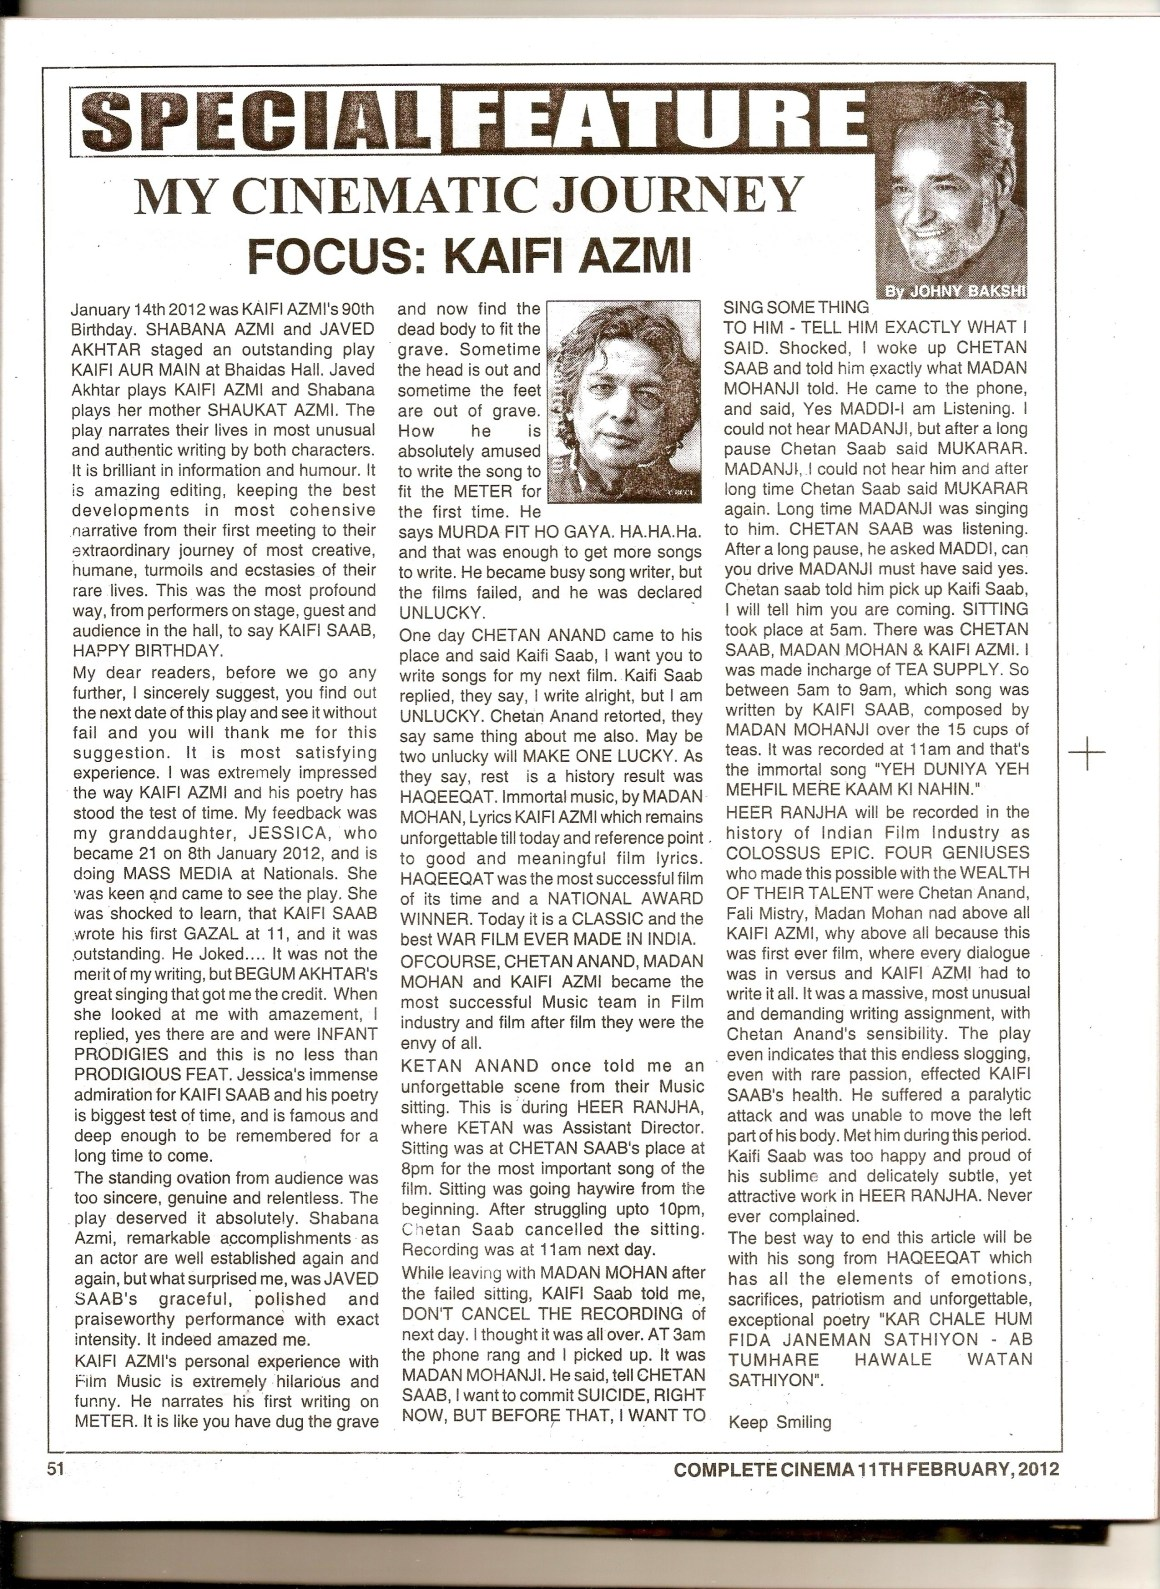 Article by Jhony Bakshi